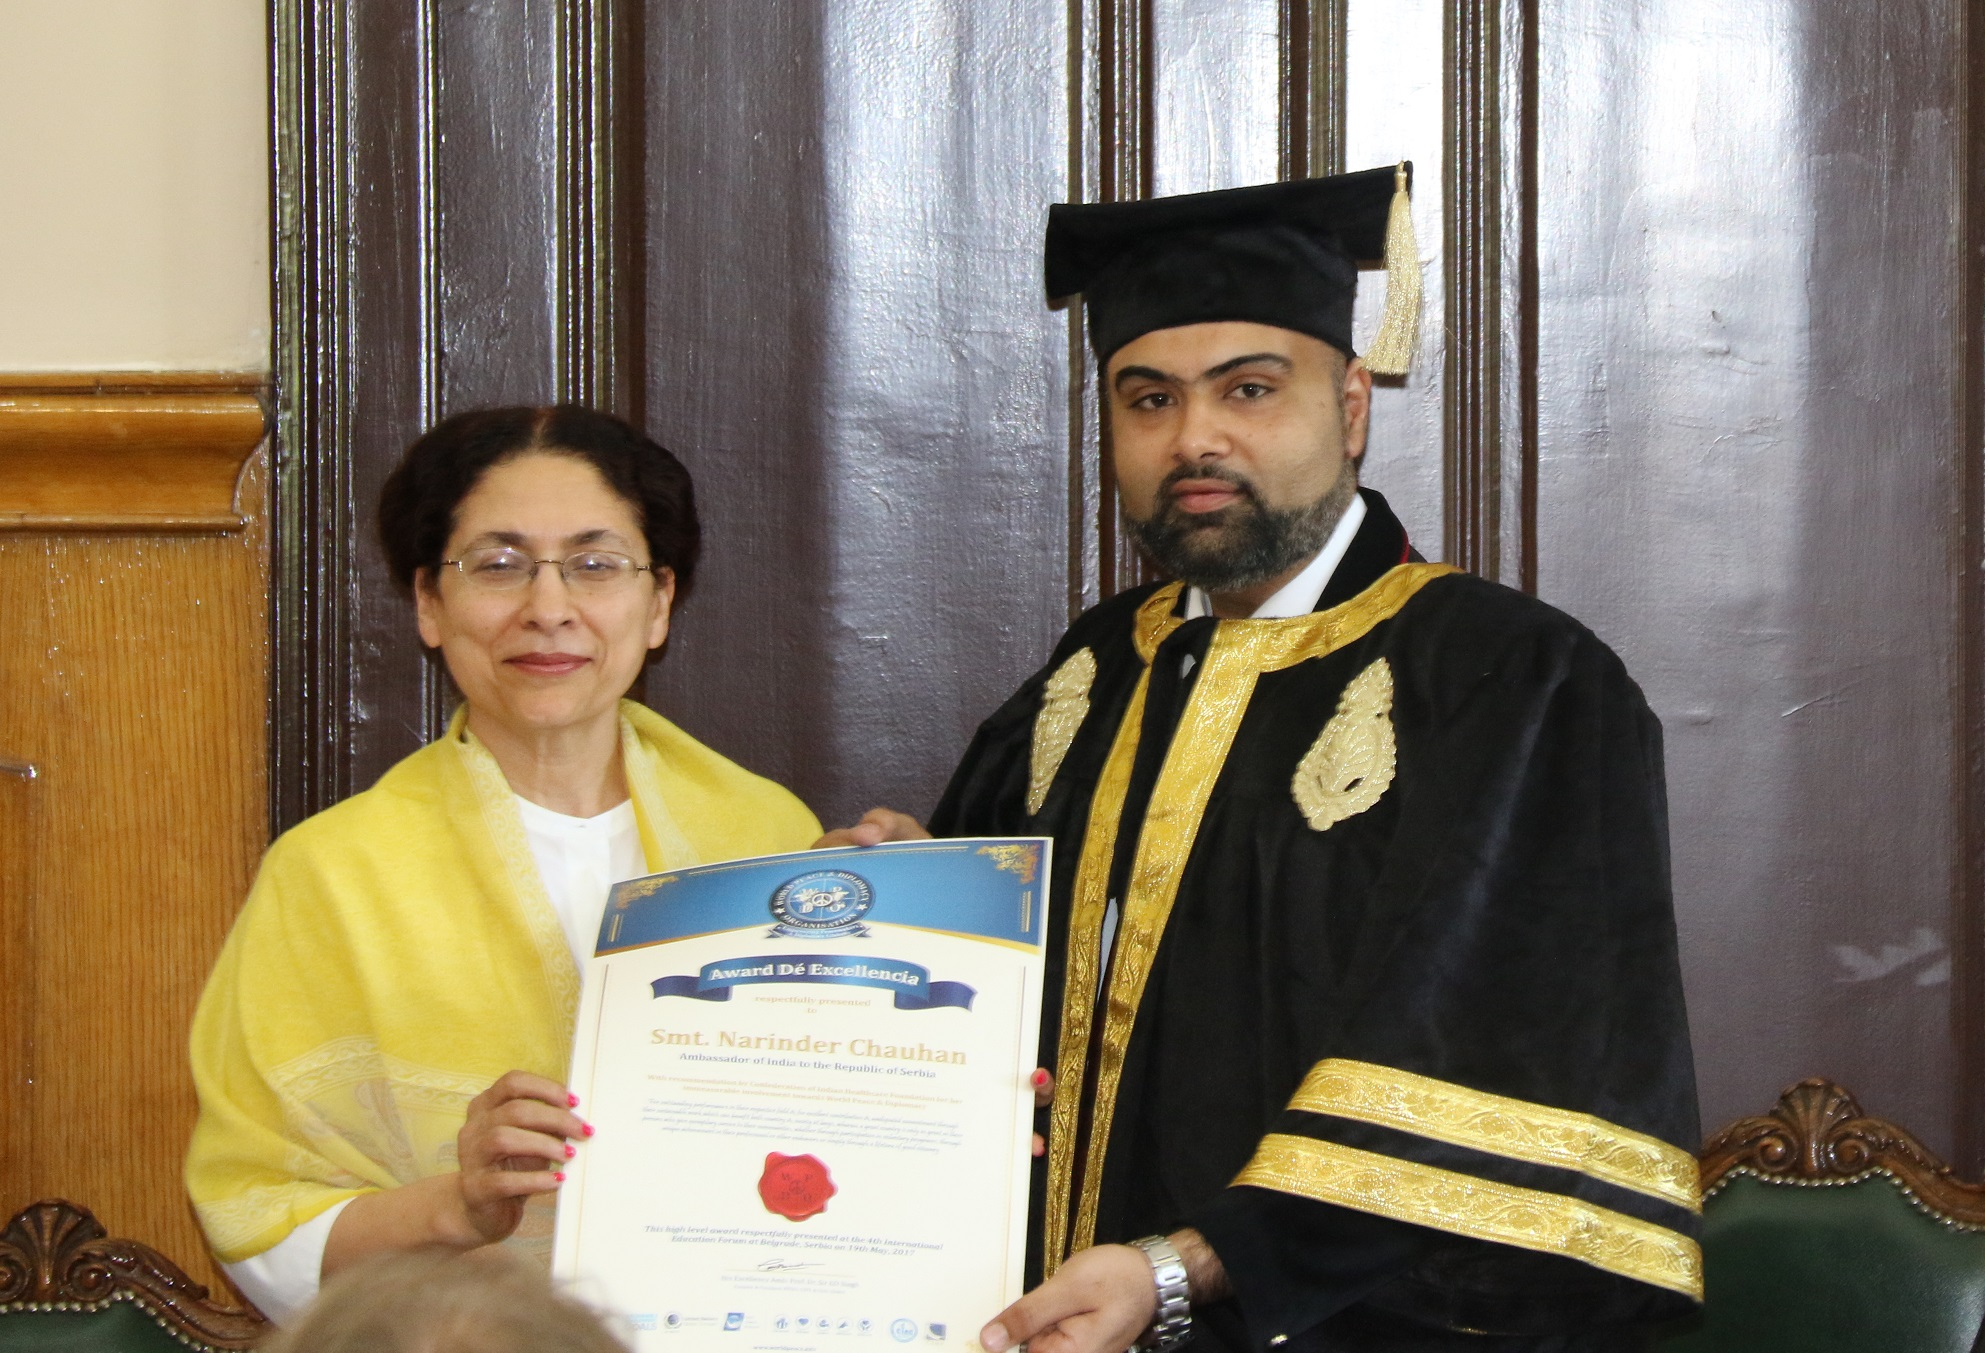 smt-narinder-chauhanambassador-of-india-in-serbia-felicitated-with-award-de-excellencia-from-wpdo-2